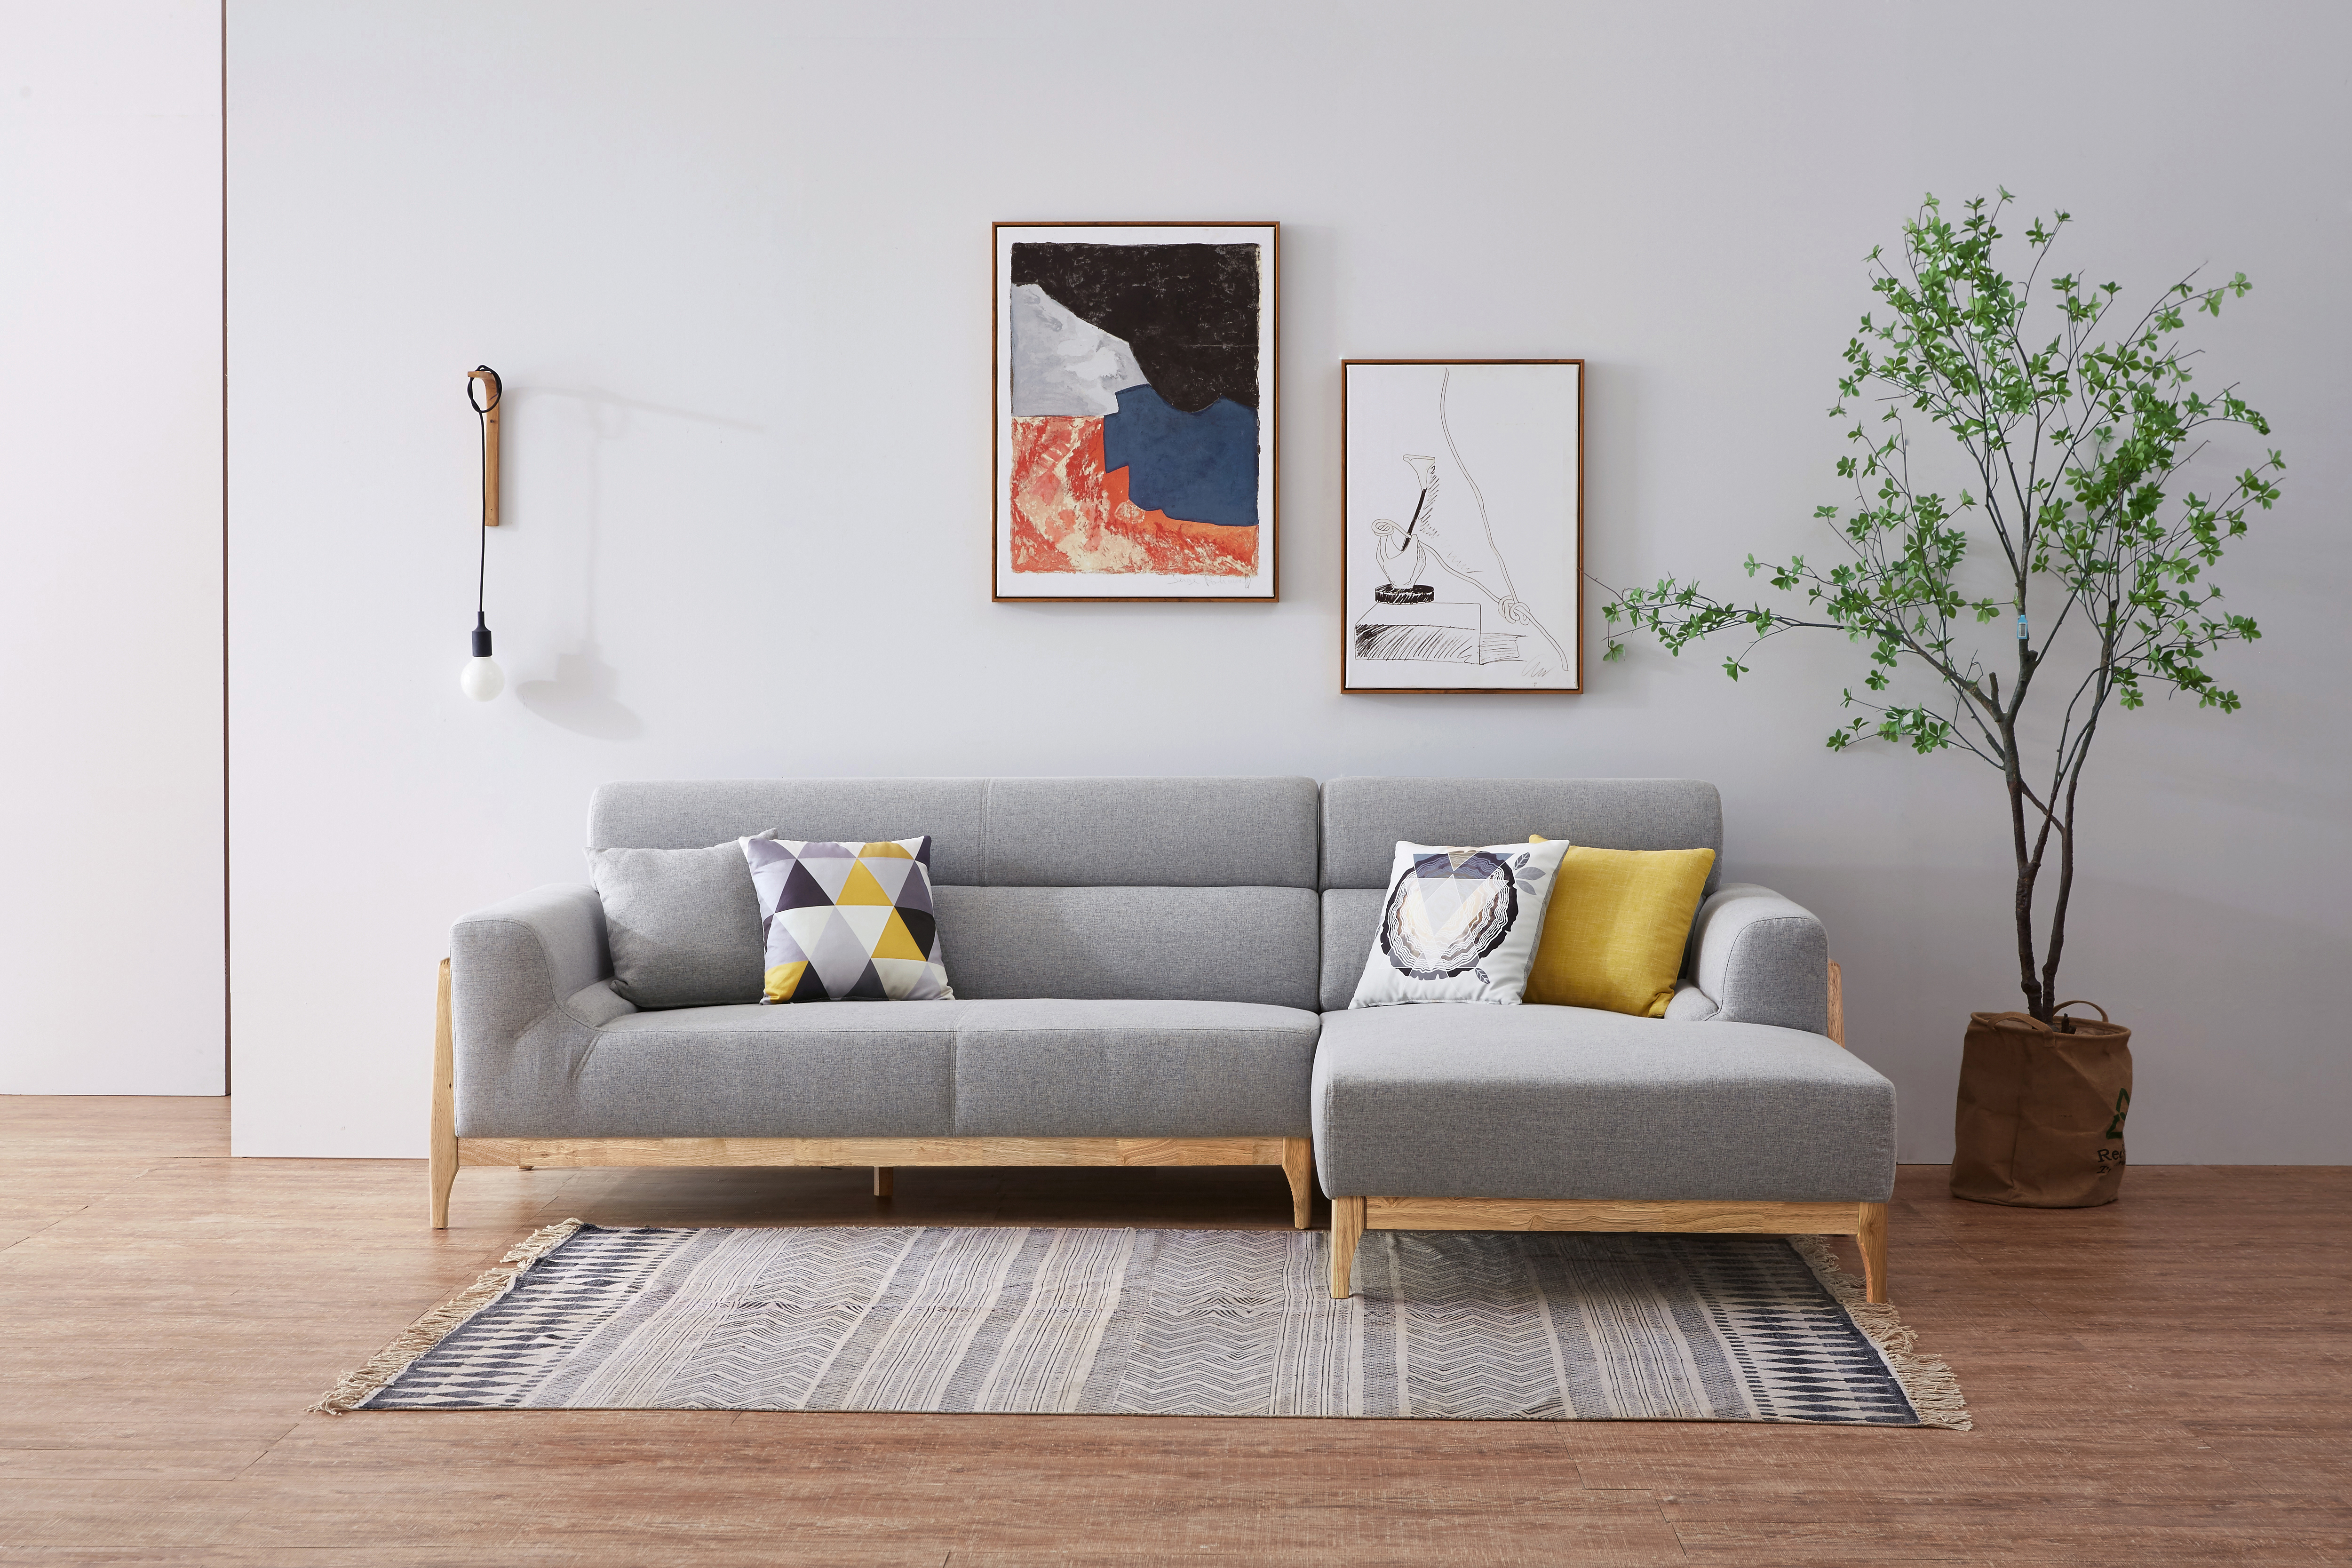 Choose Small Furniture, Or Eliminate The Furniture In The First Place